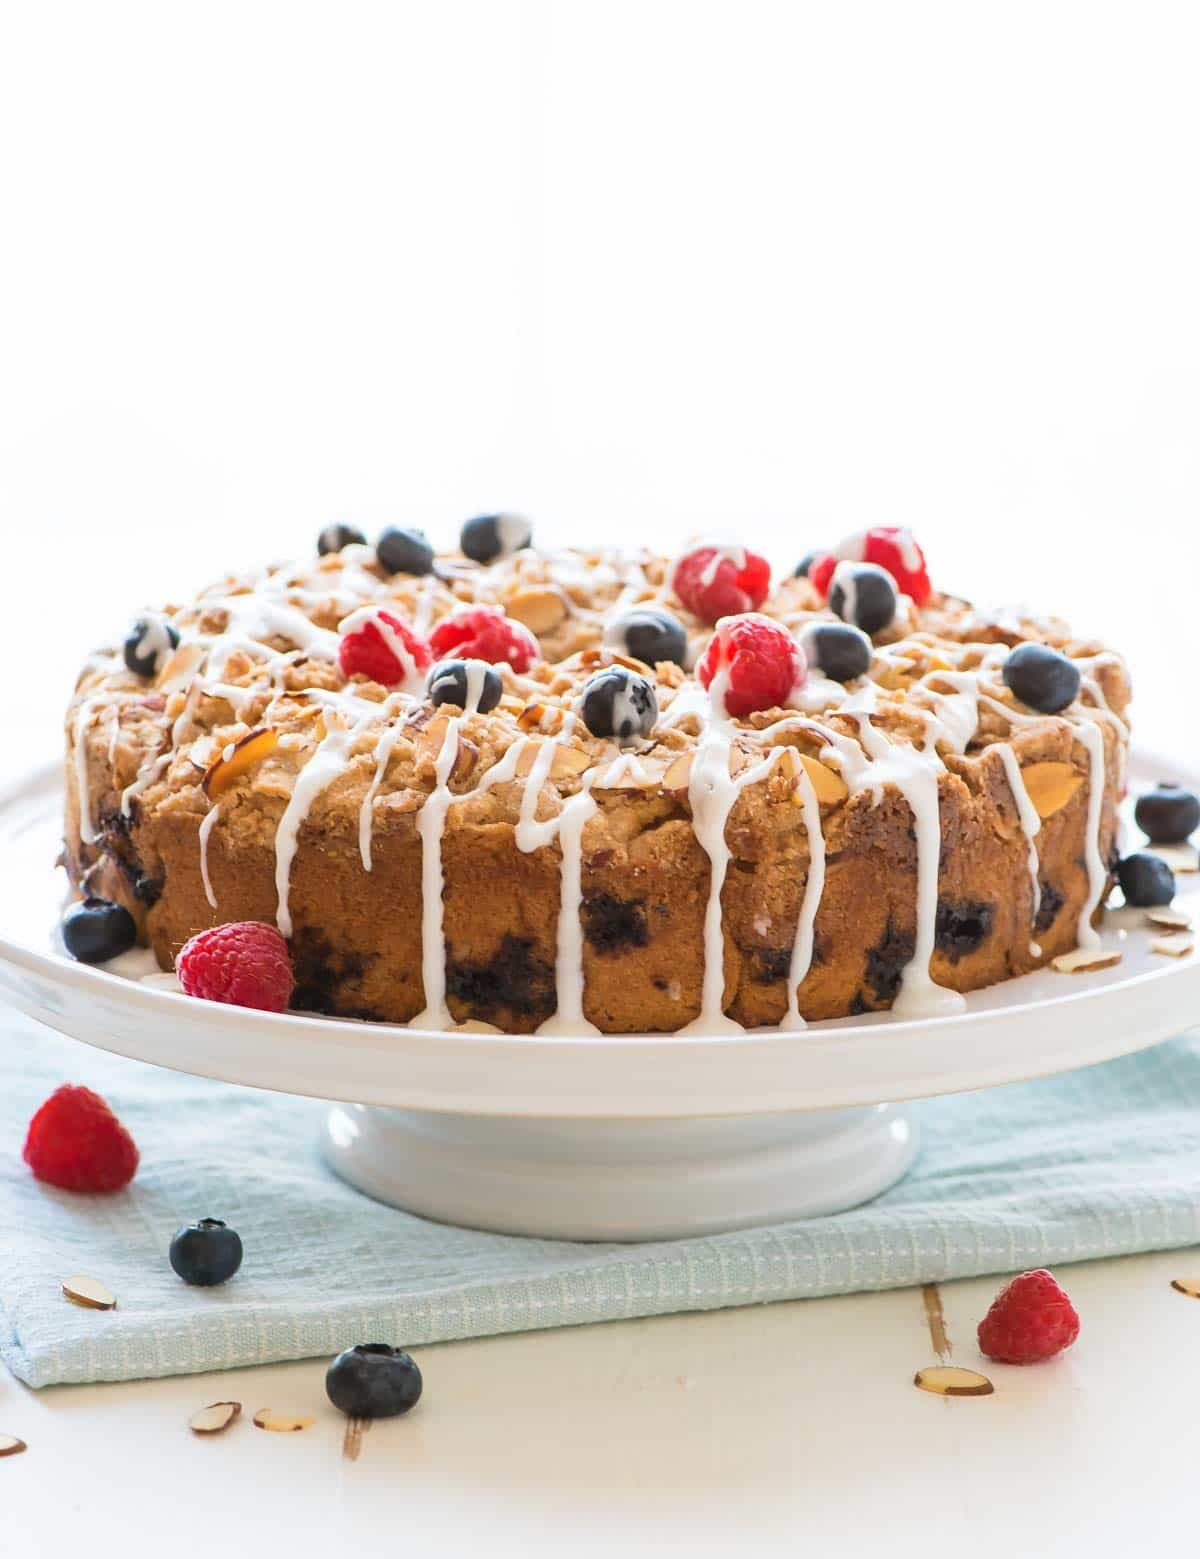 Almond Berry Crumb Cake recipe – this is the BEST coffee cake! It has tons of buttery cinnamon crumbs, the cake is soft and moist, and every bite has berries. Perfect for brunch! @wellplated